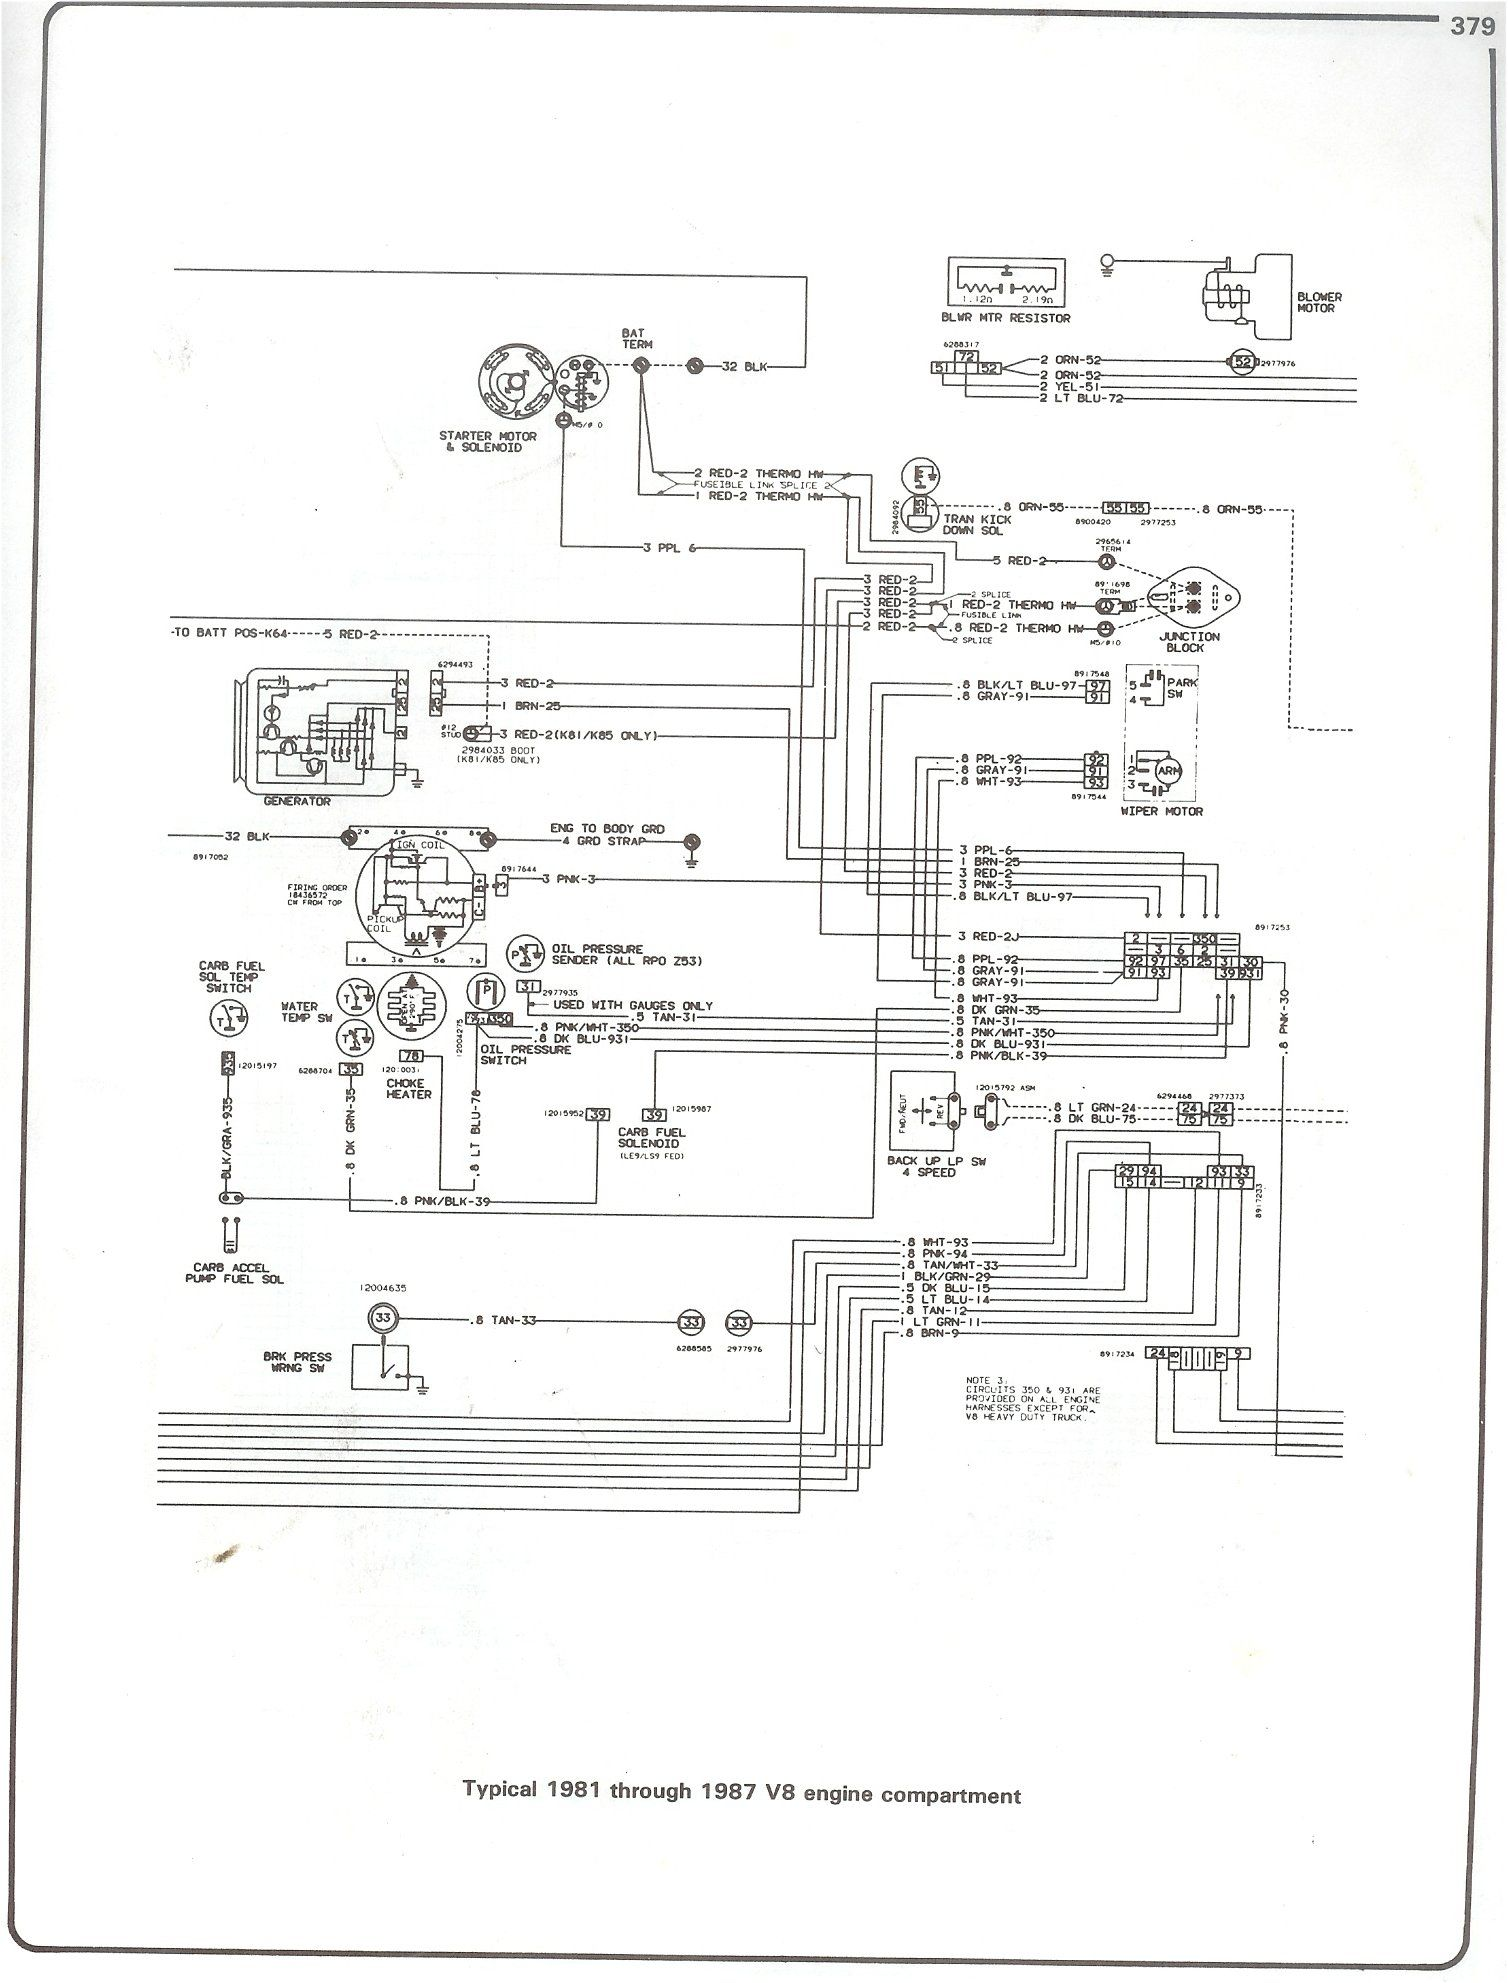 pin by malcolm cail on projects to try chevy trucks 85 chevy 85 2 8l chevy vacuum diagram wiring schematic [ 1508 x 1983 Pixel ]